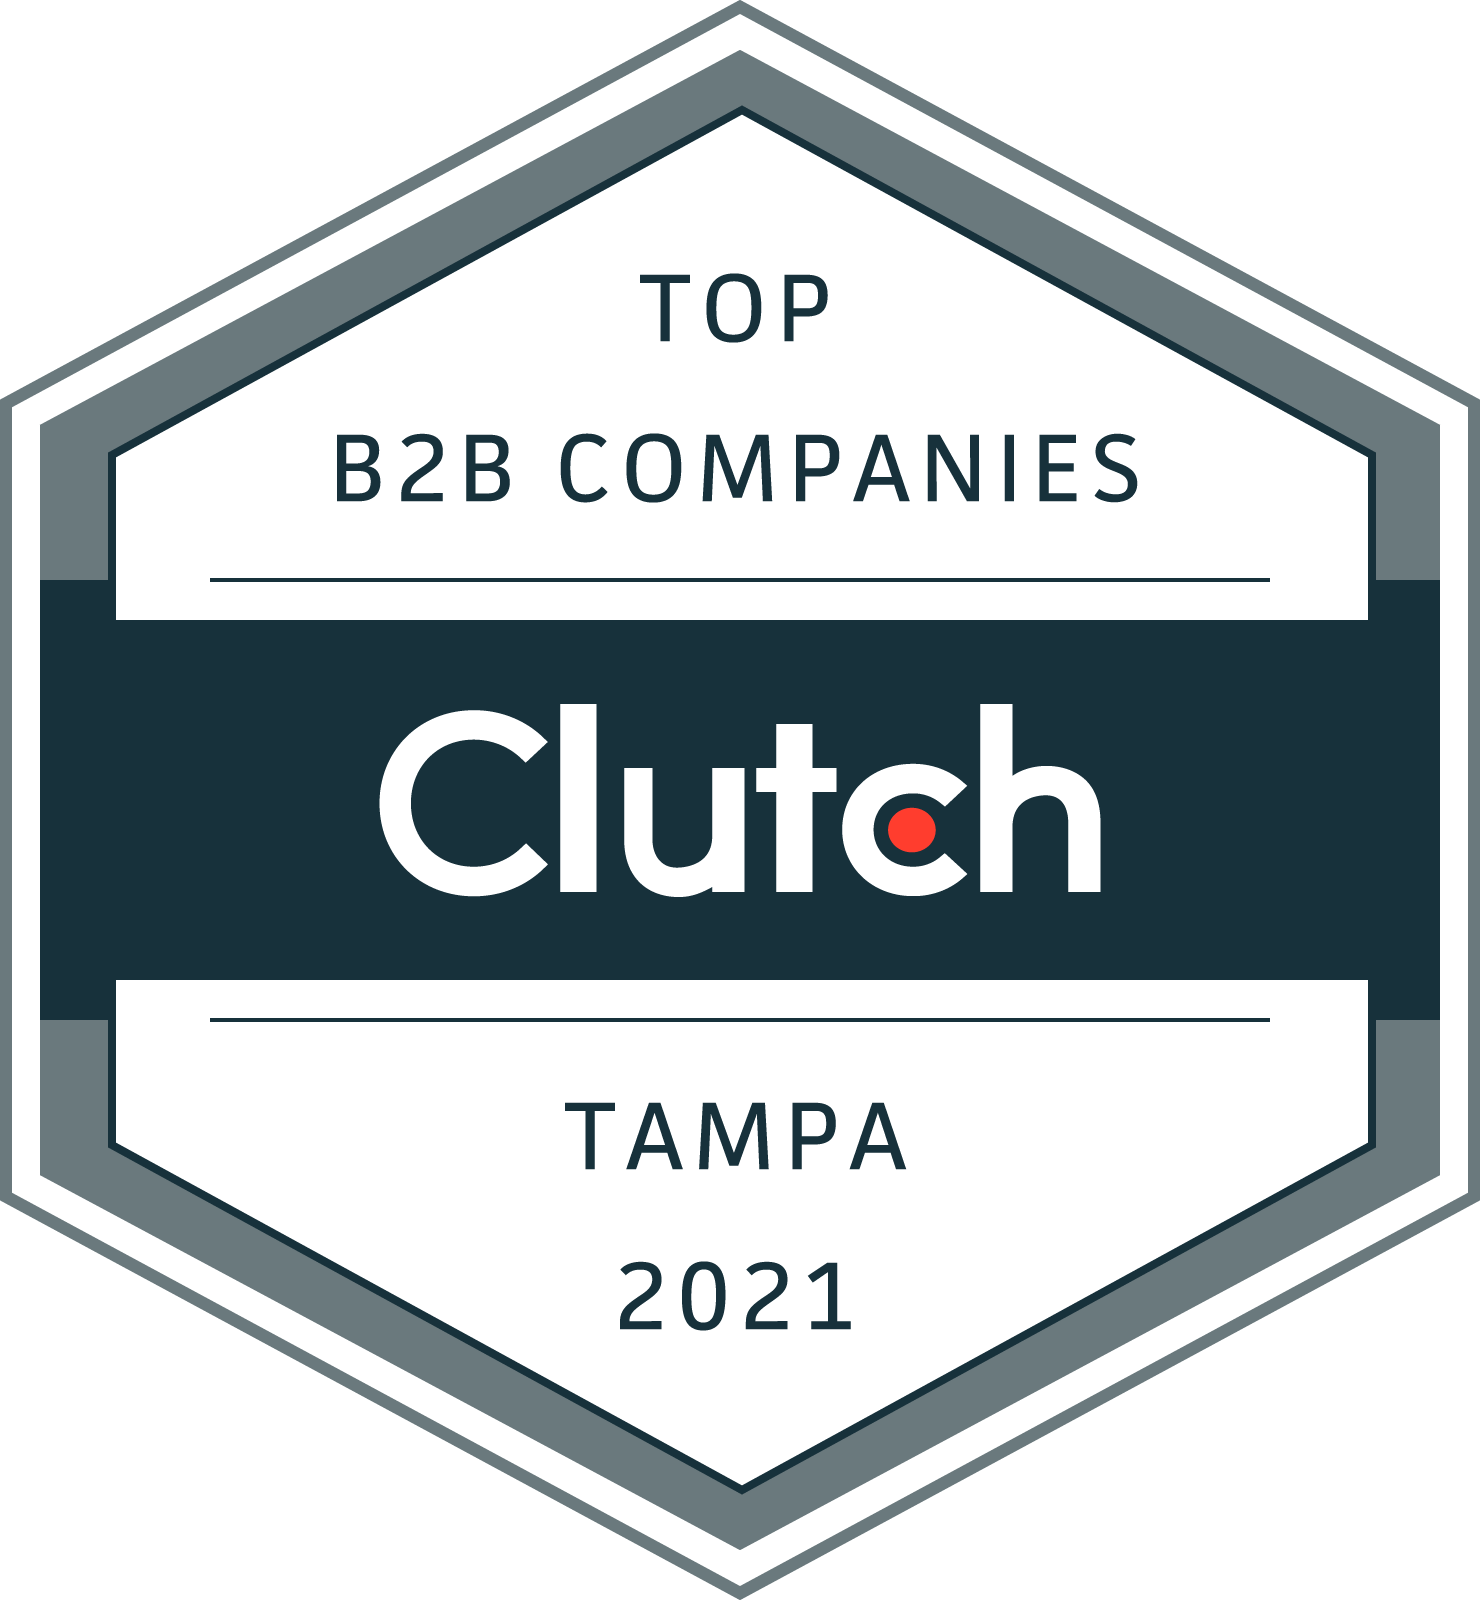 B2B Business Experts Bags Top Digital Strategy Agency Award on Clutch